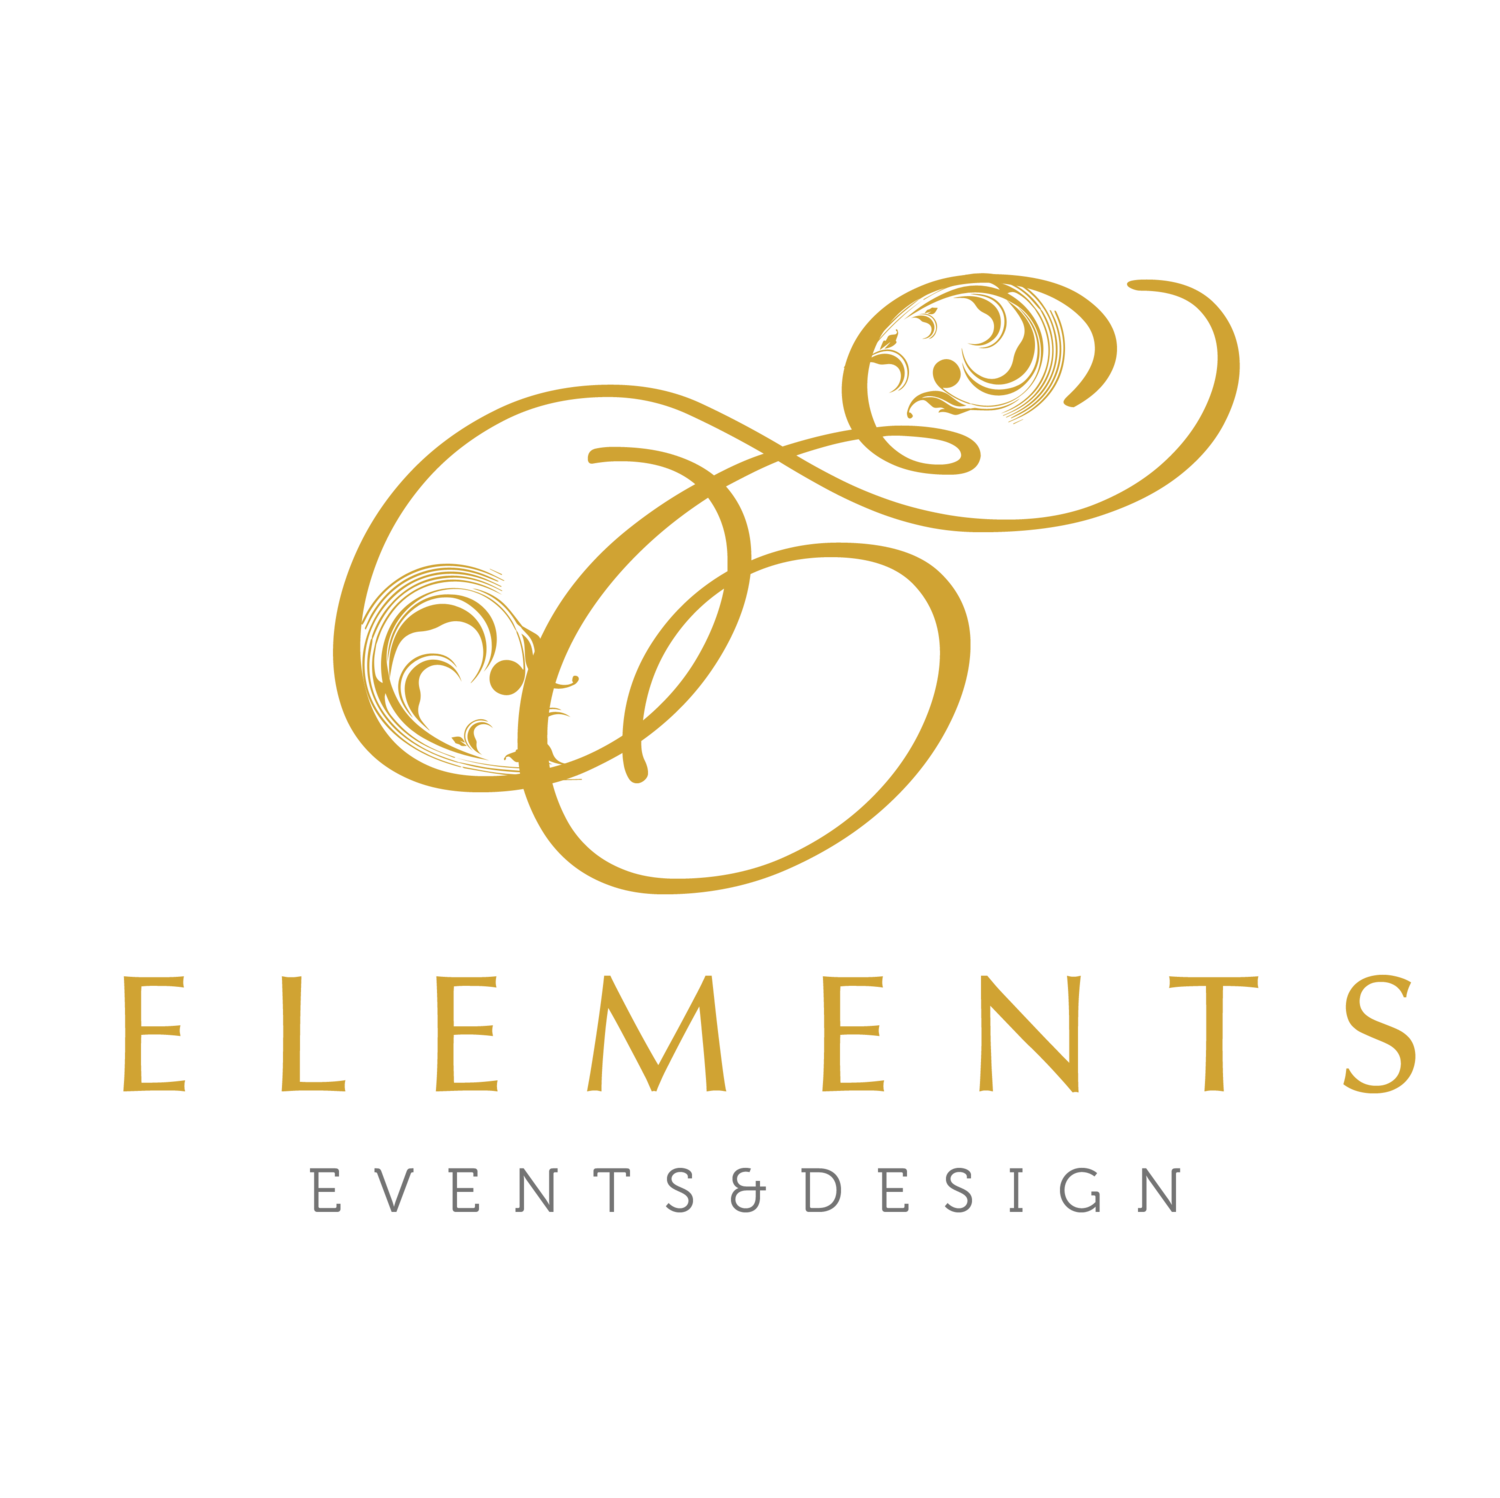 Elements Events